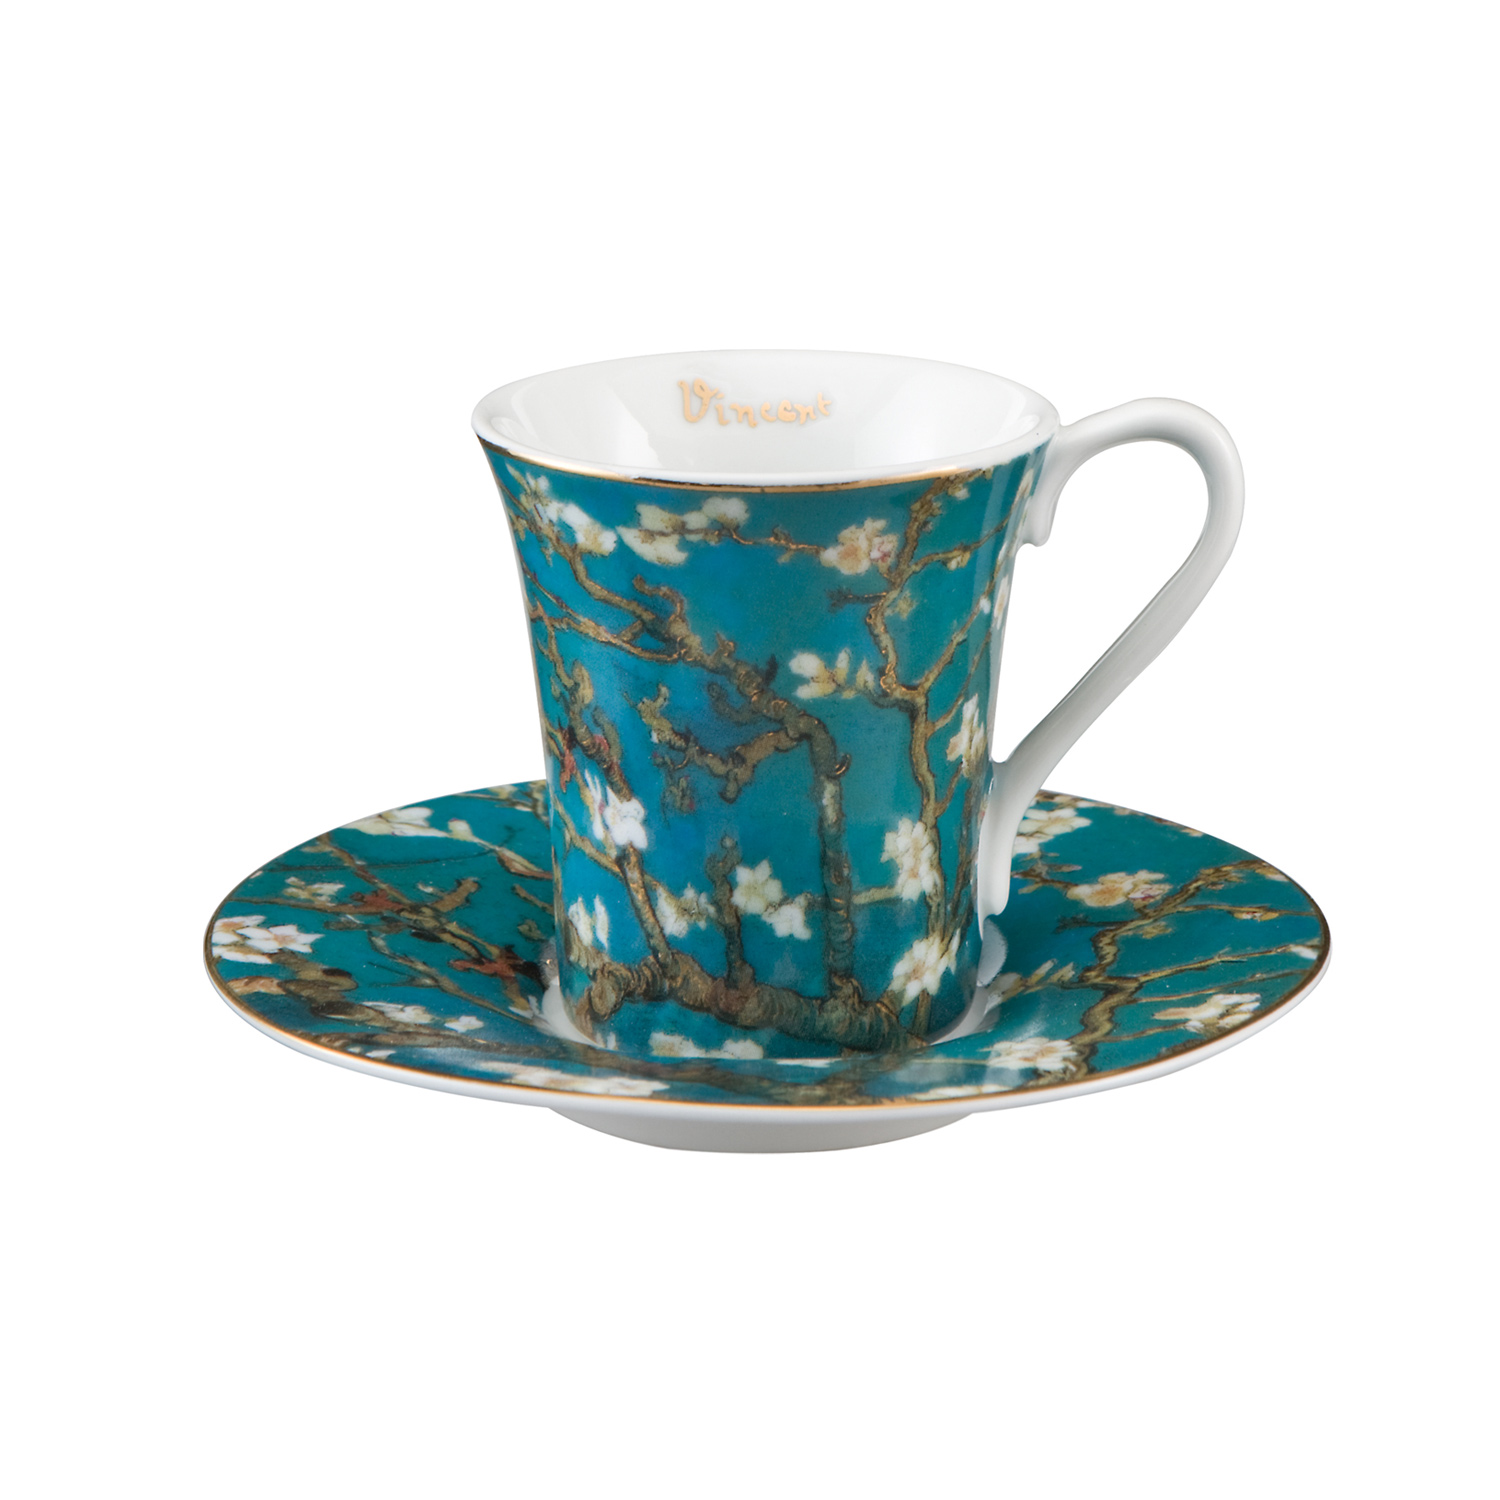 tasse caf en porcelaine fine amandier en fleurs van gogh. Black Bedroom Furniture Sets. Home Design Ideas